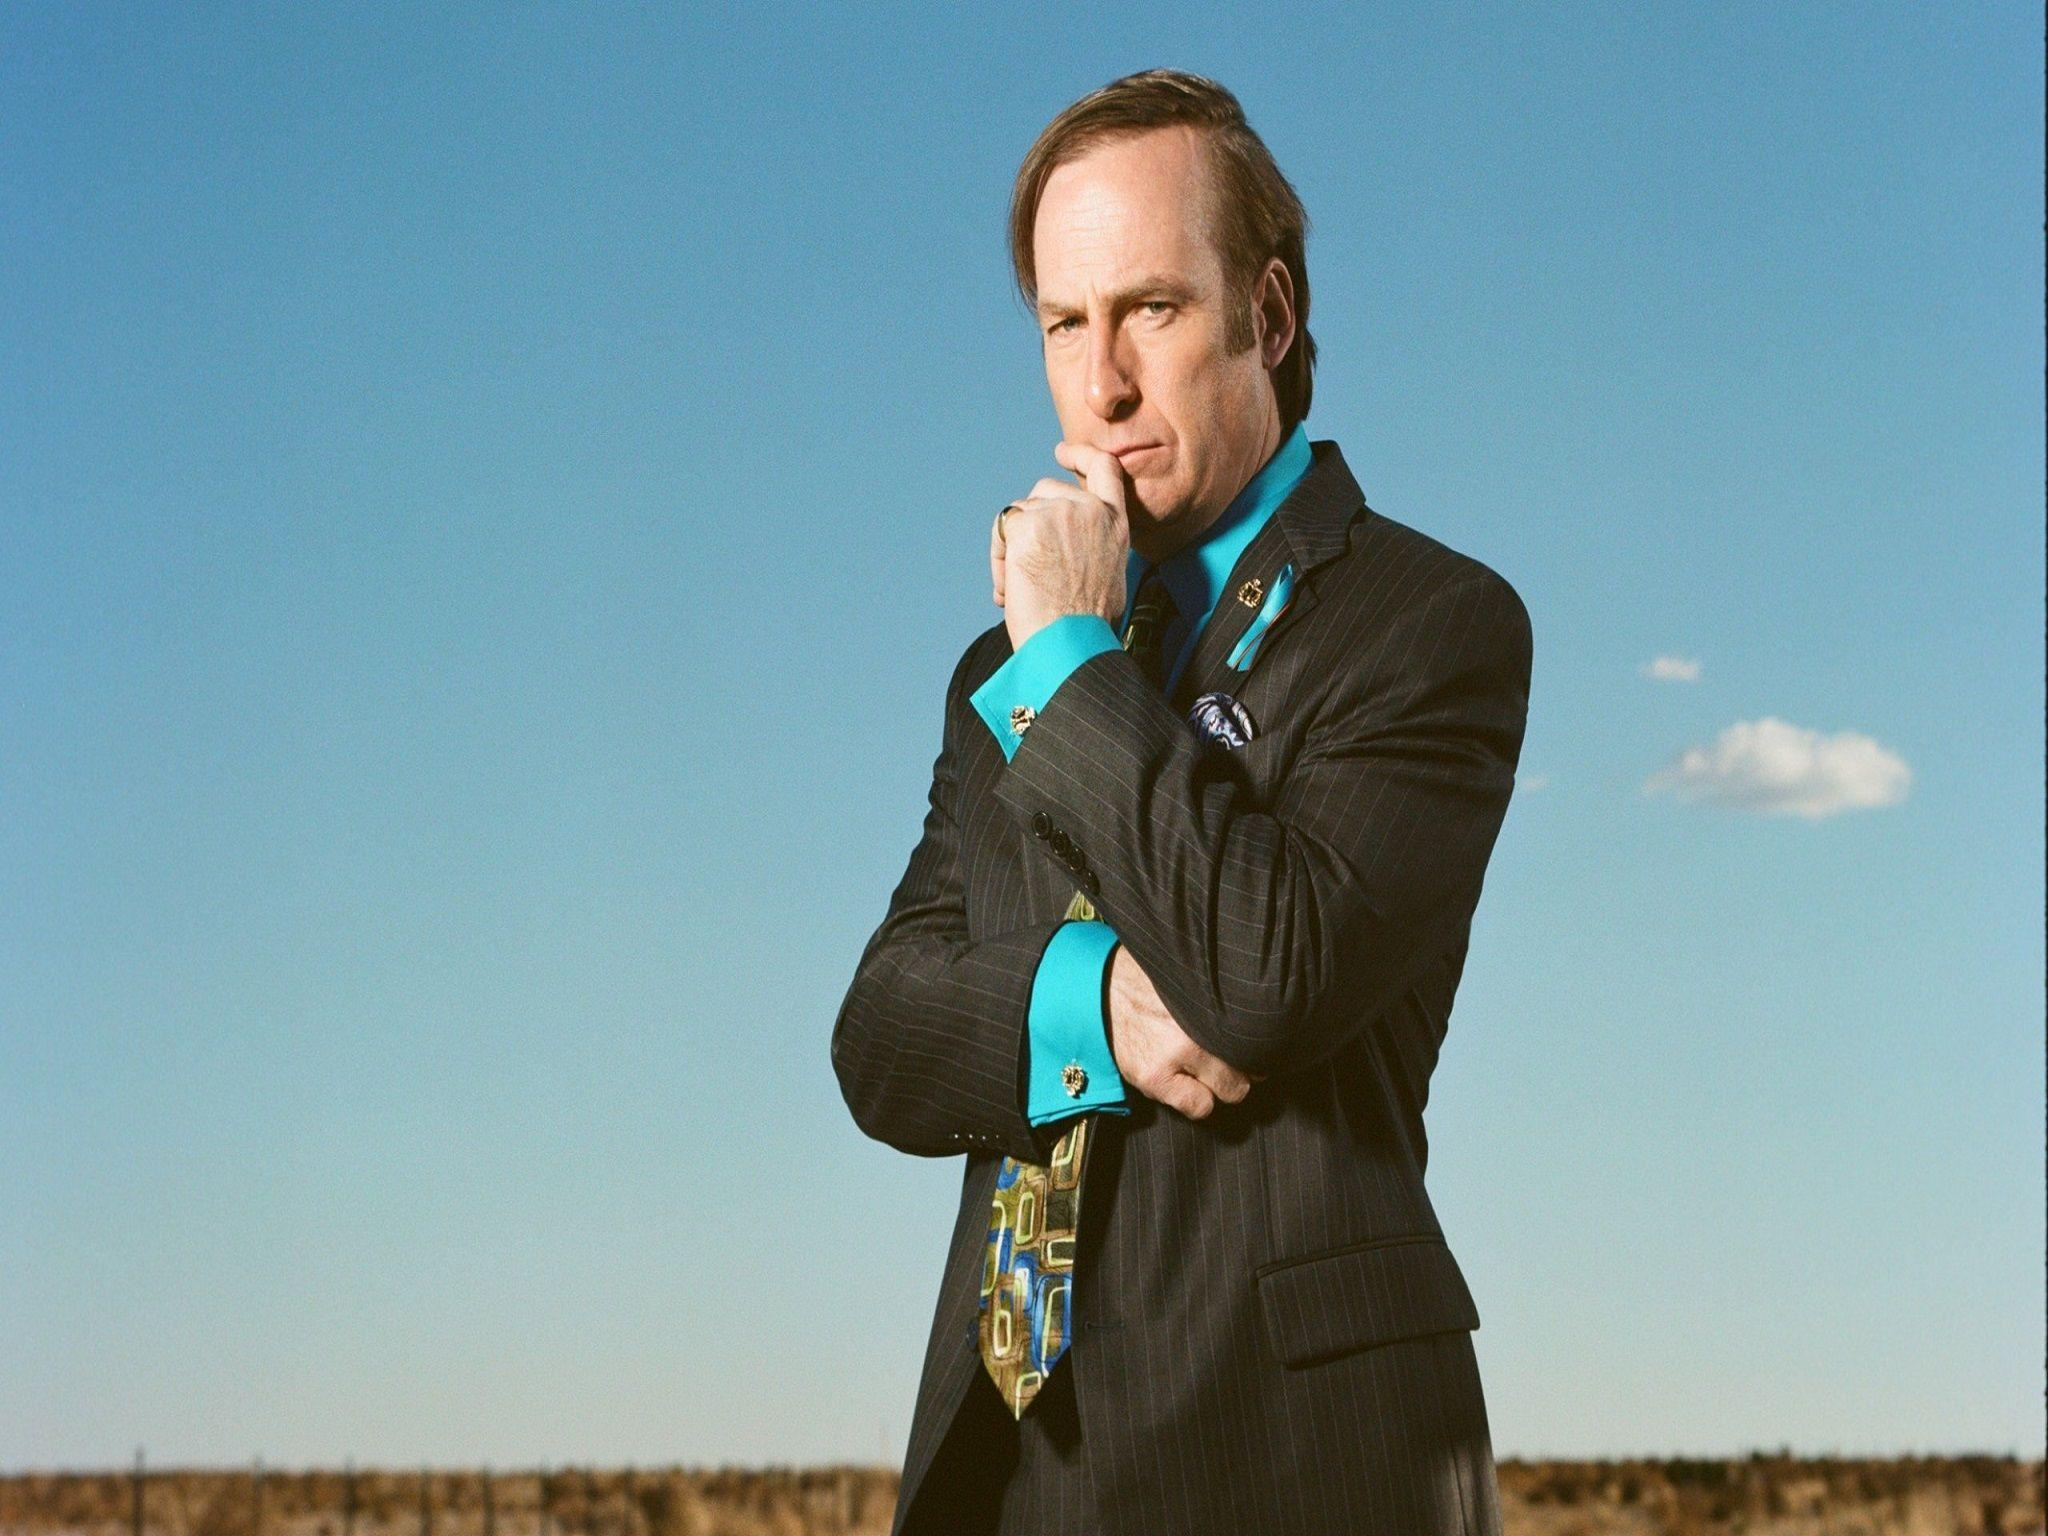 Better Call Saul Wallpapers For iPhone And iPad